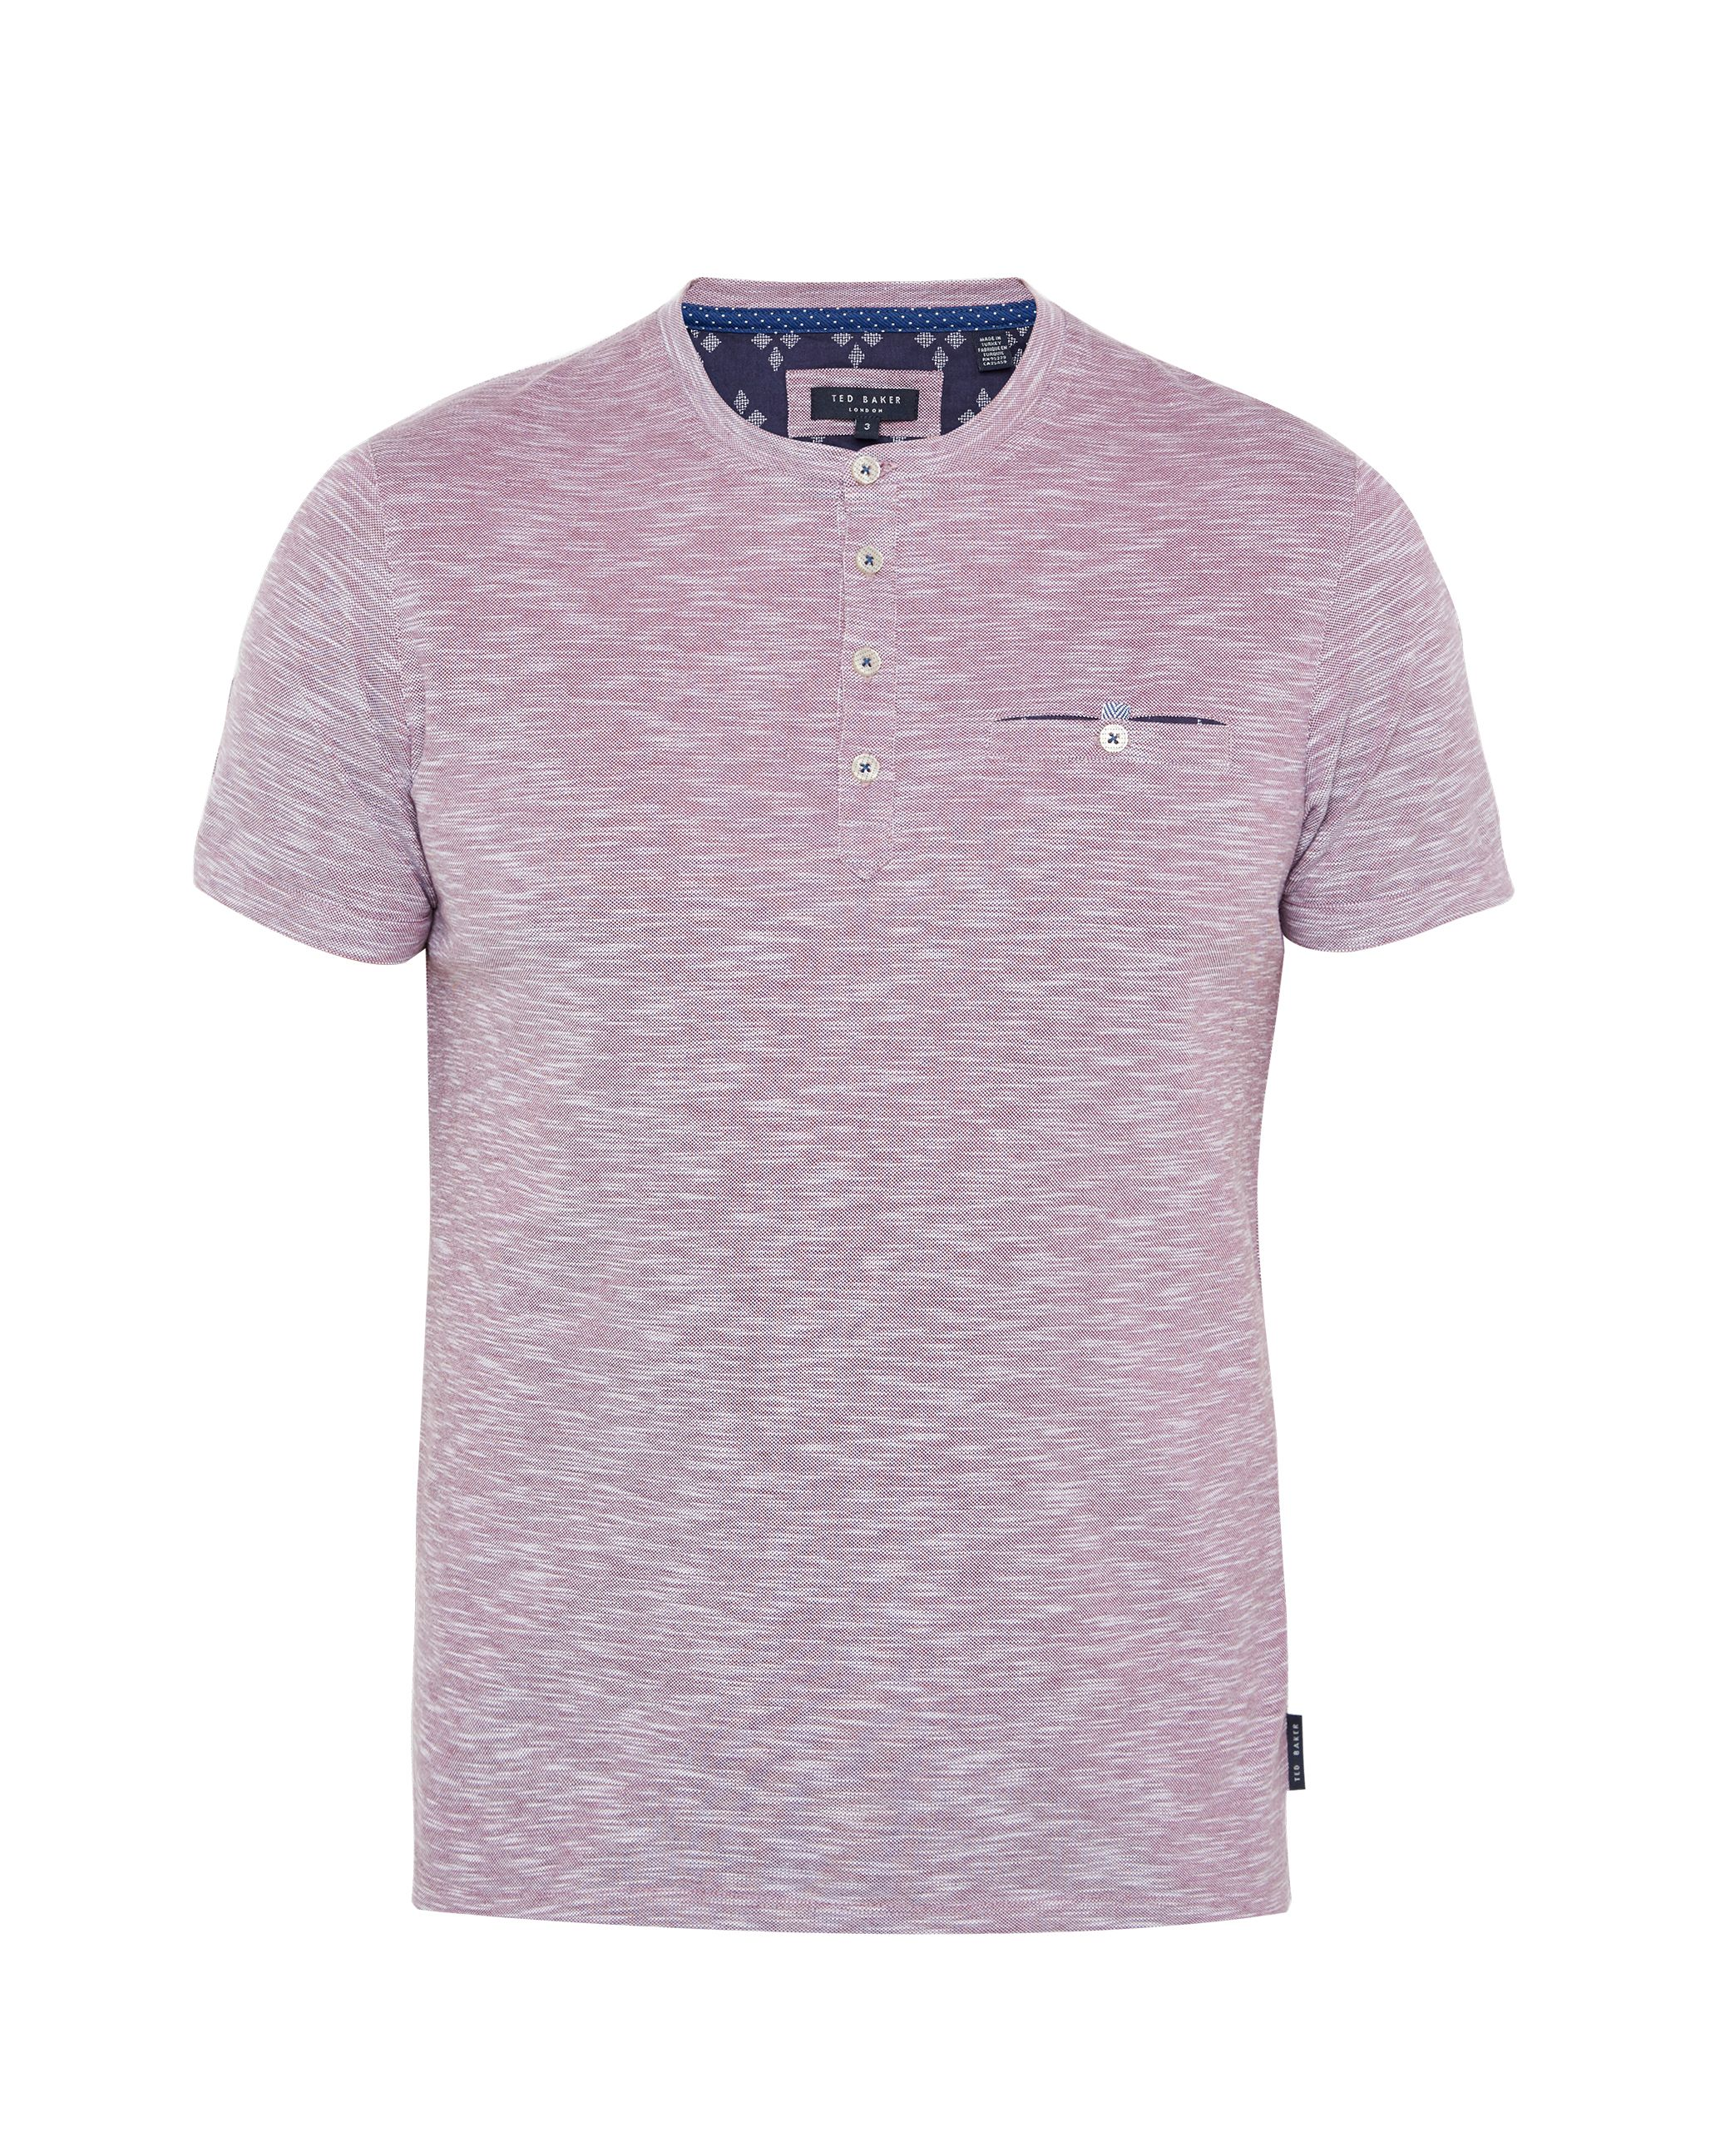 Men's Ted Baker Rocher Cotton Henley T-Shirt, Grape